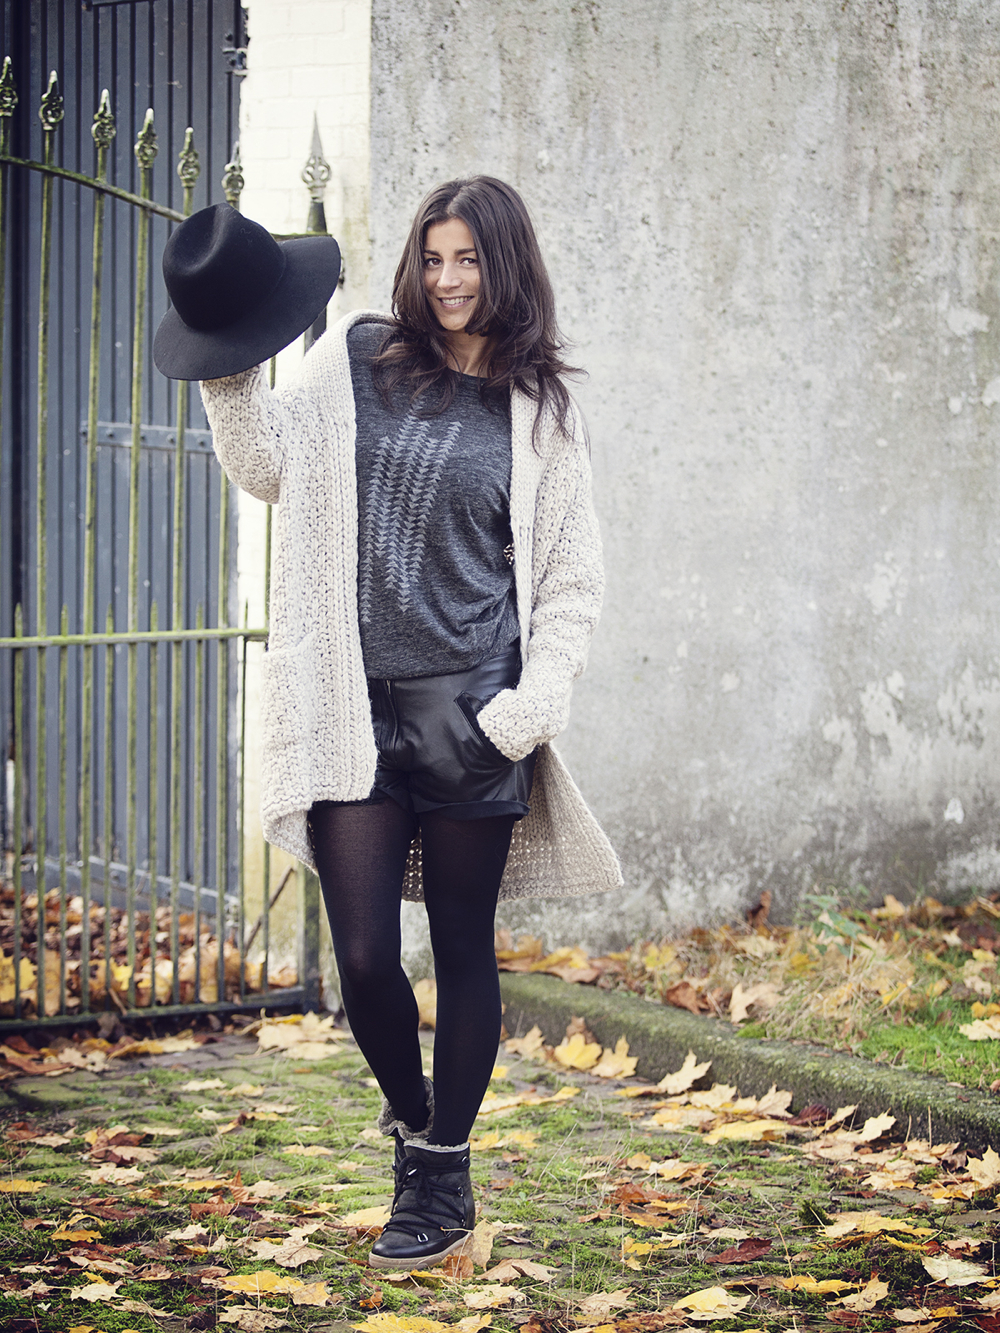 streetstyle fall winter 2014 leather shorts and chunky cardigan BlogForShops for Ruby Tuesday brand